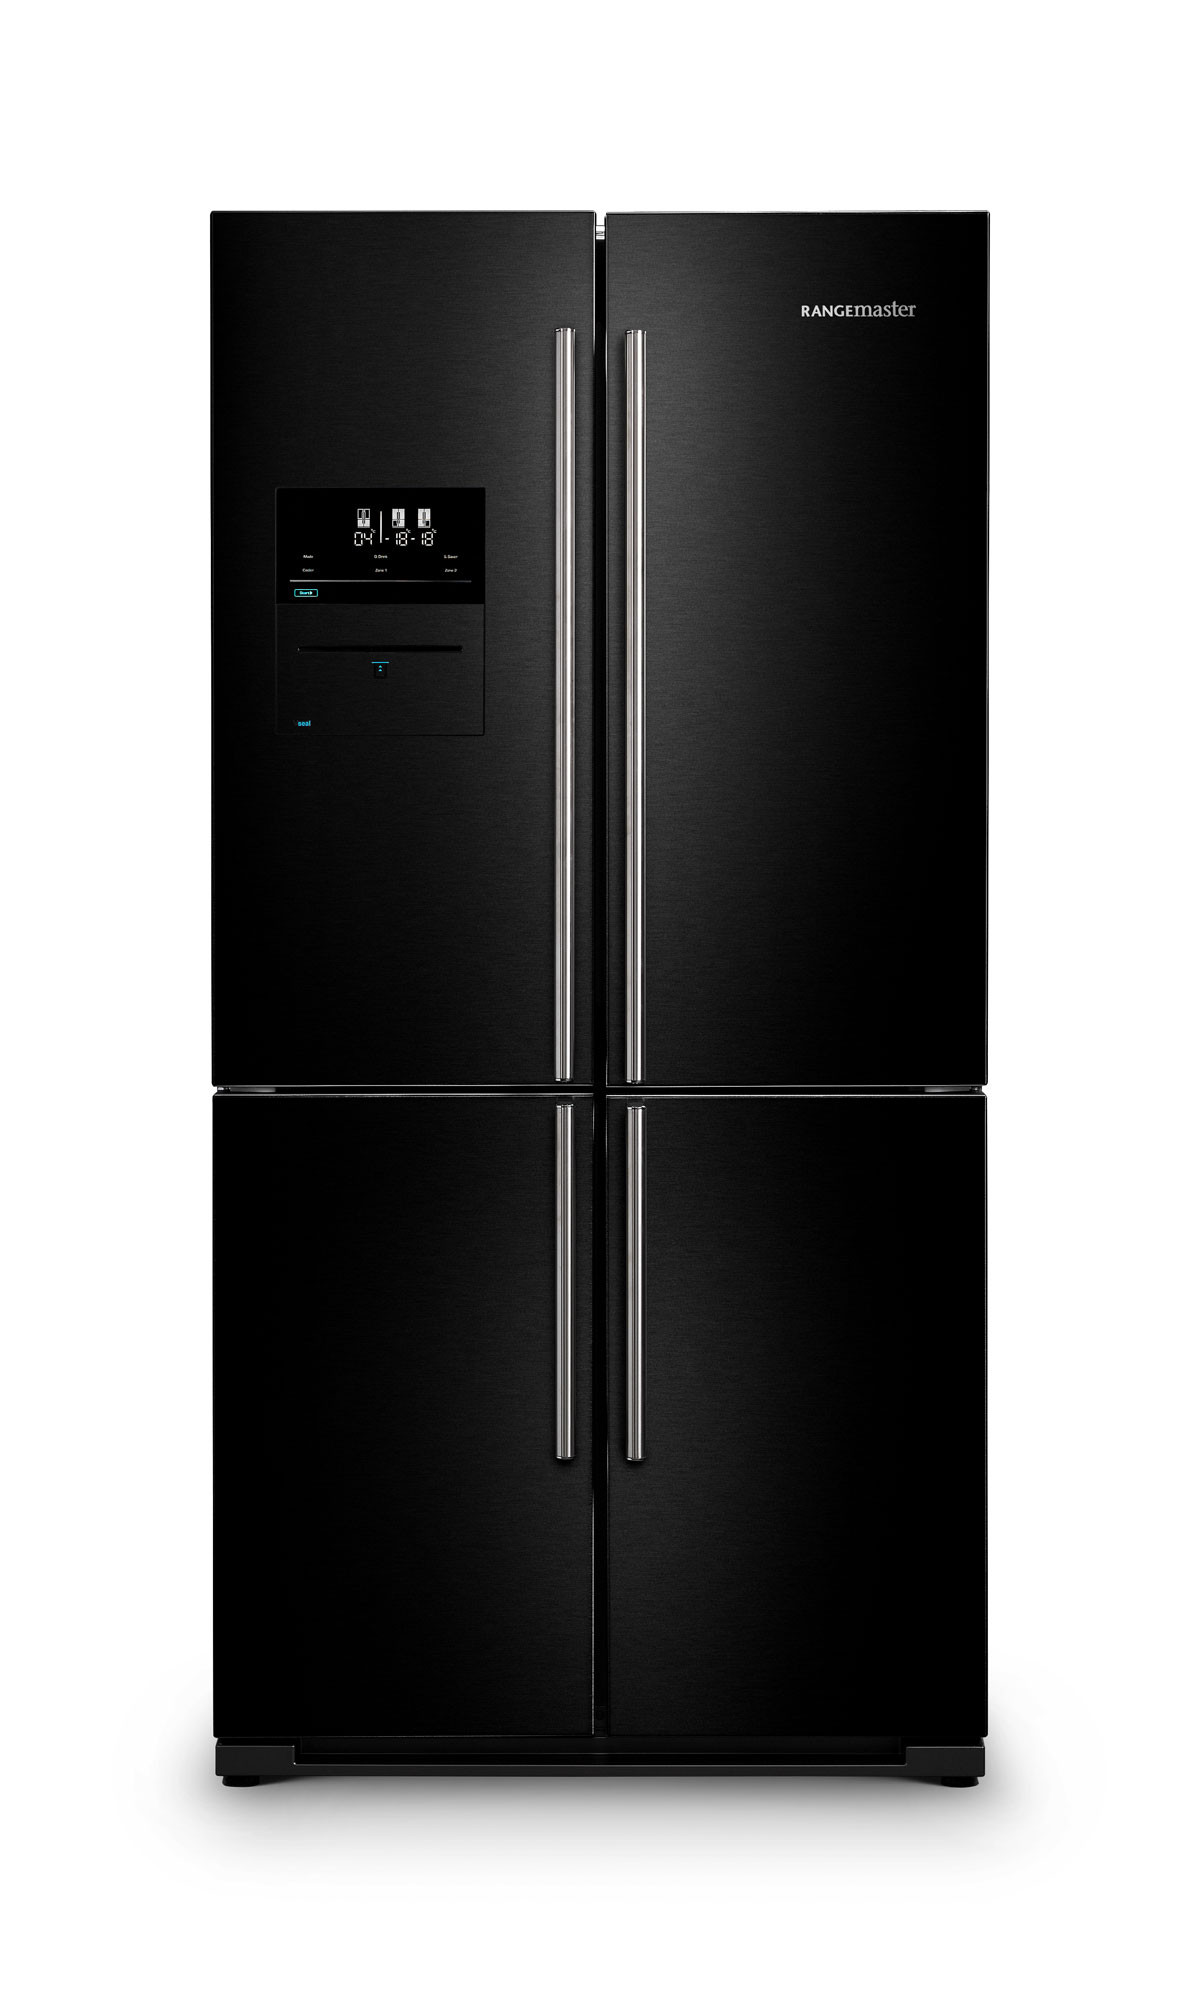 Rangemaster SXS Deluxe 556 Litre A+ Rated Black Fridge Freezer RSXS19BL/C